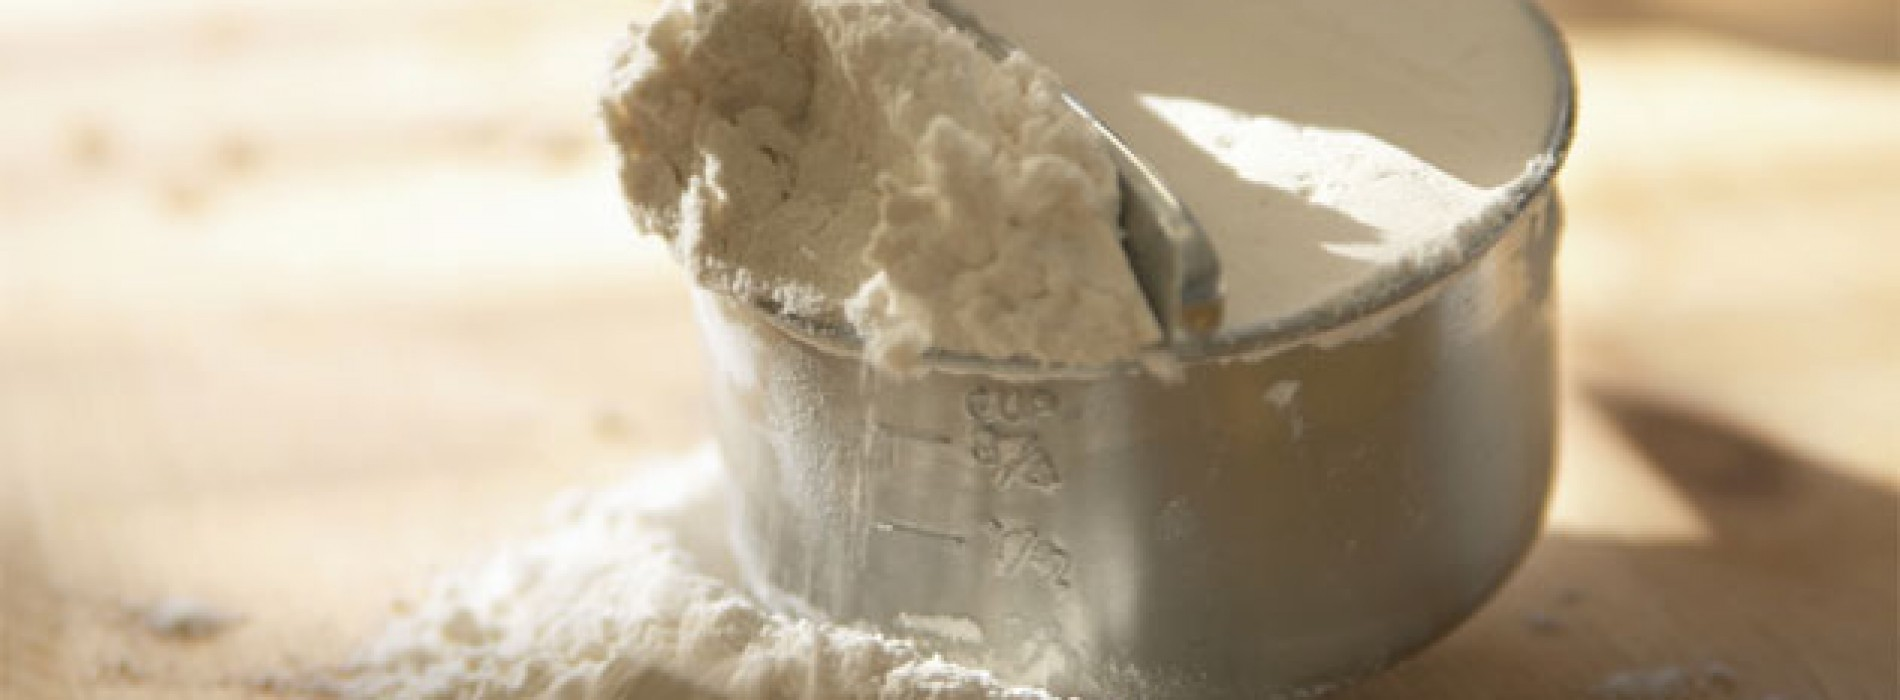 Chef Notes: What's better? All-purpose or Self-Rising Flour?